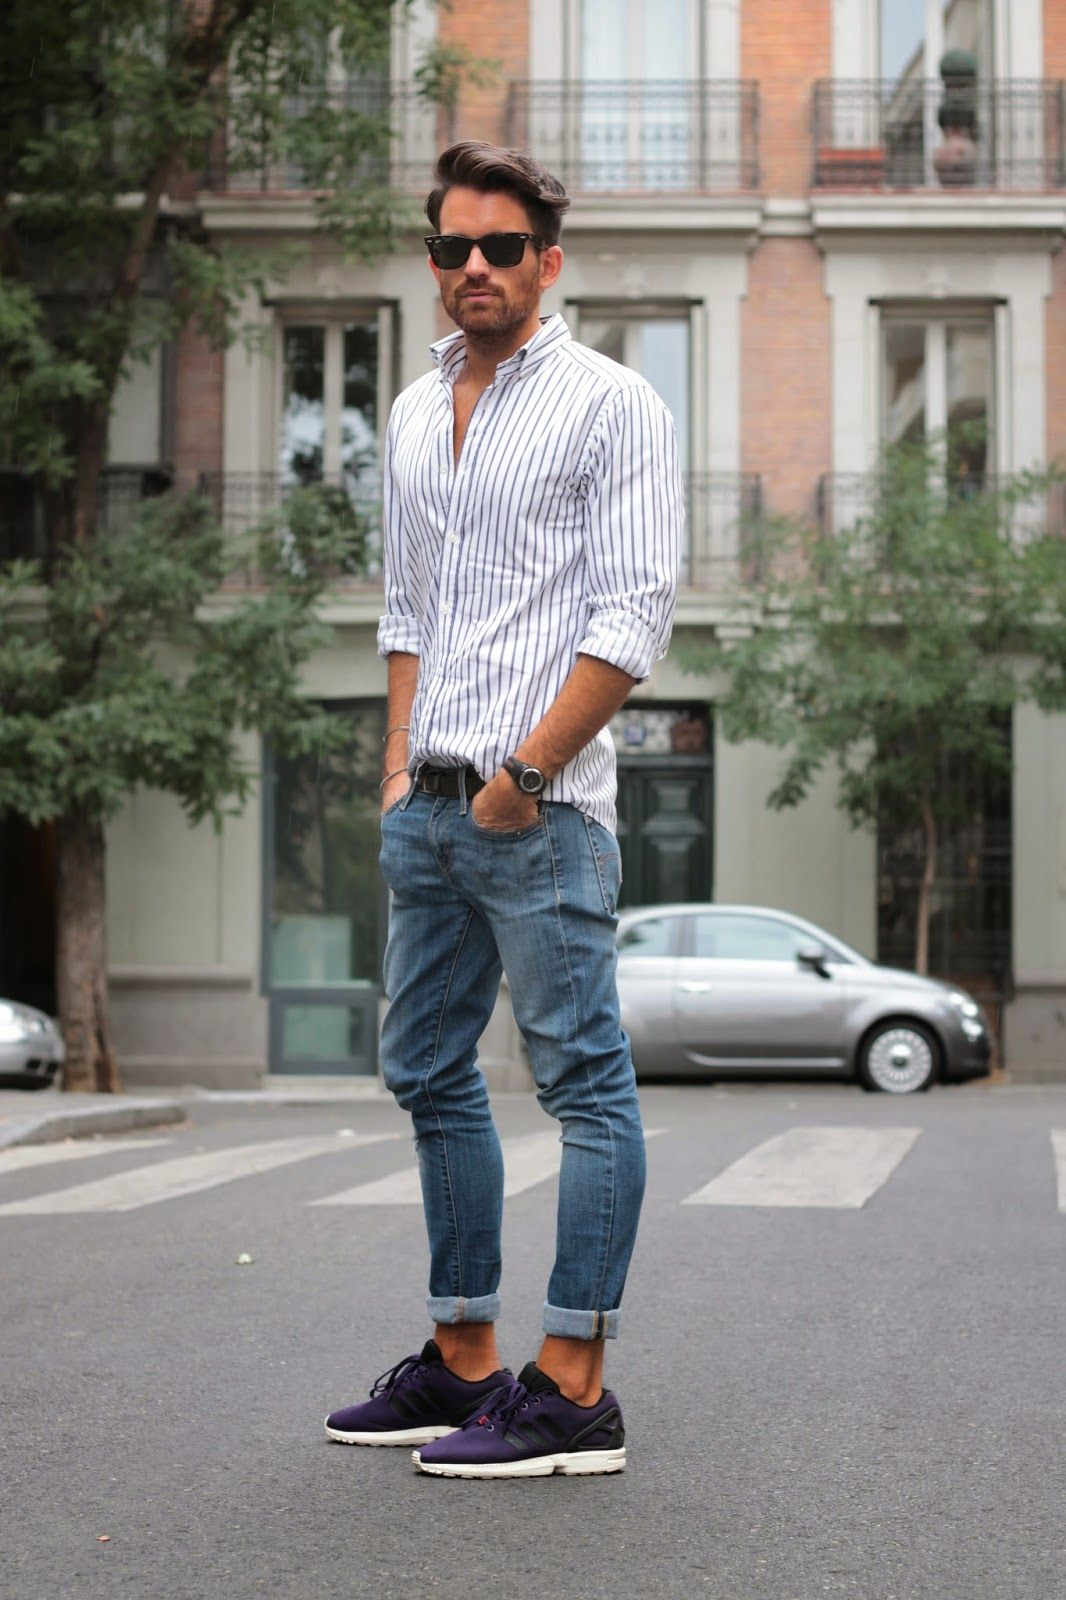 Flannel men's style  Style For Men on Tumblr yourstylementumblr VKONTAKTE